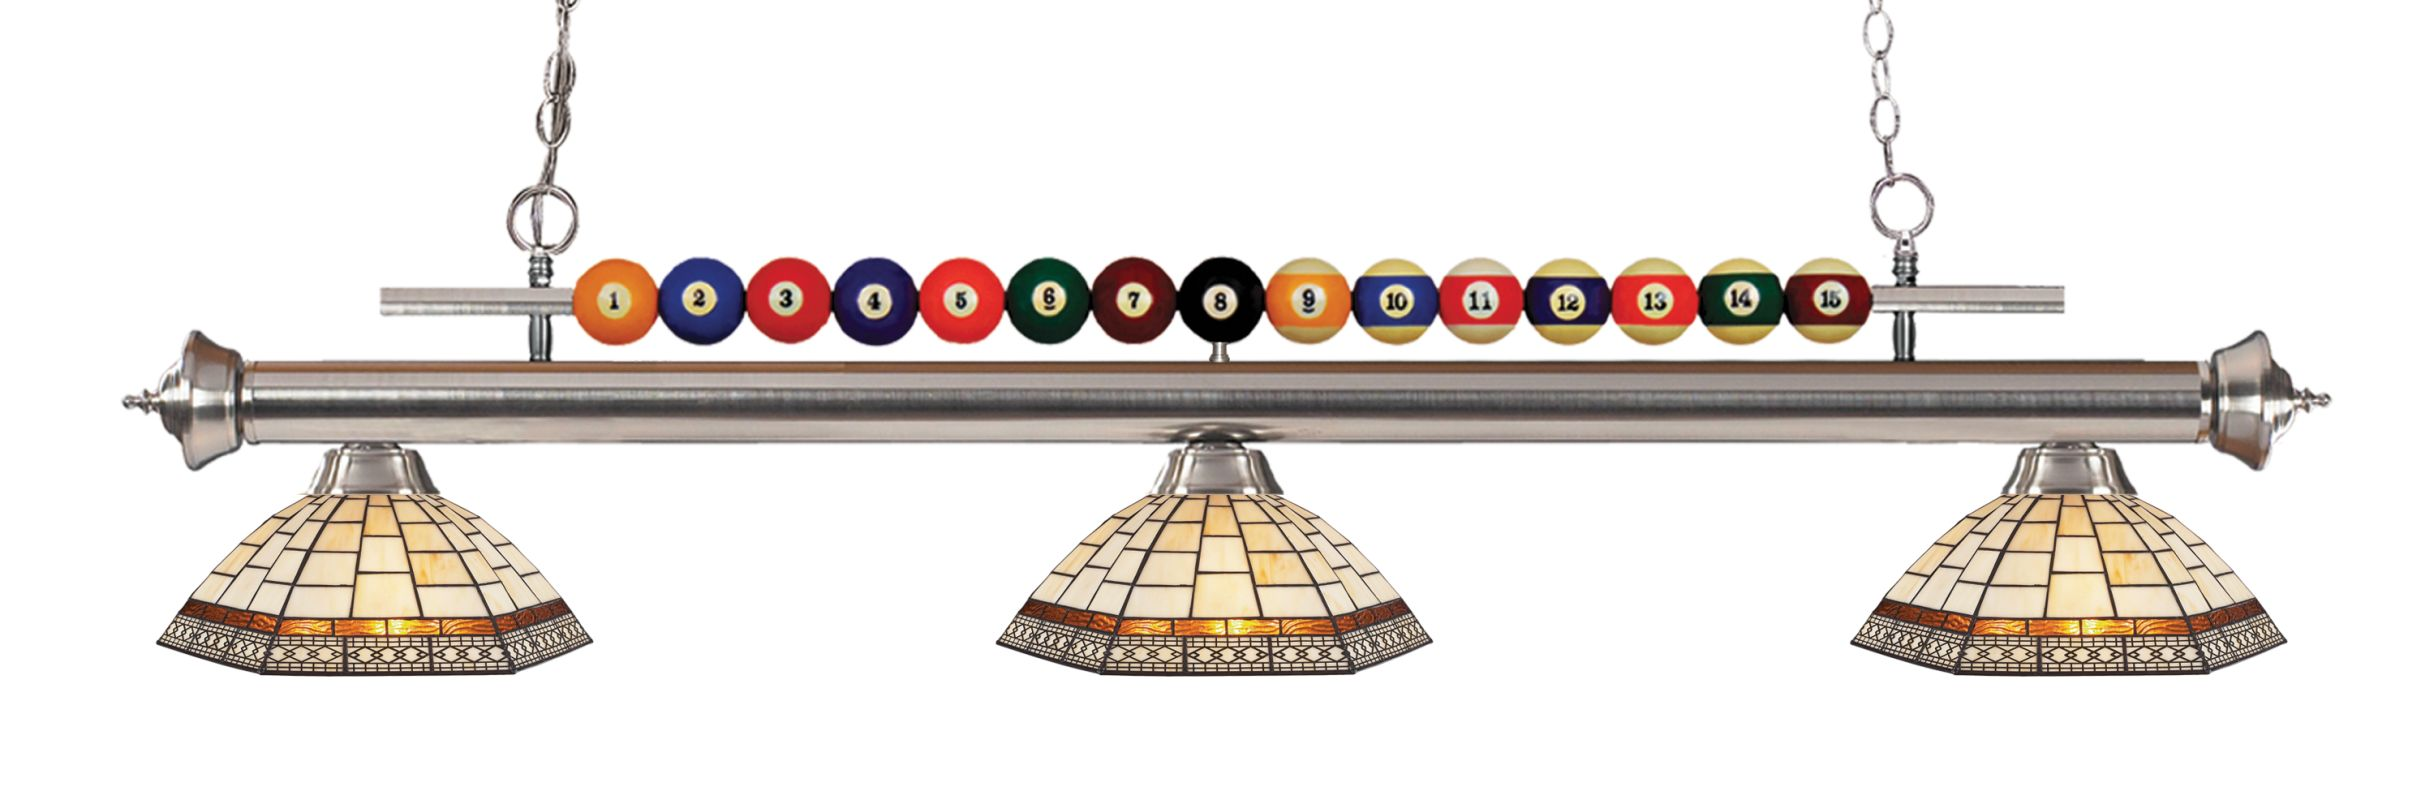 Z-Lite 170-Z14-35 Shark 3 Light Billiard Chandelier with Multi-Colored Sale $918.00 ITEM: bci2630305 ID#:170BN-Z14-35 UPC: 685659048667 :